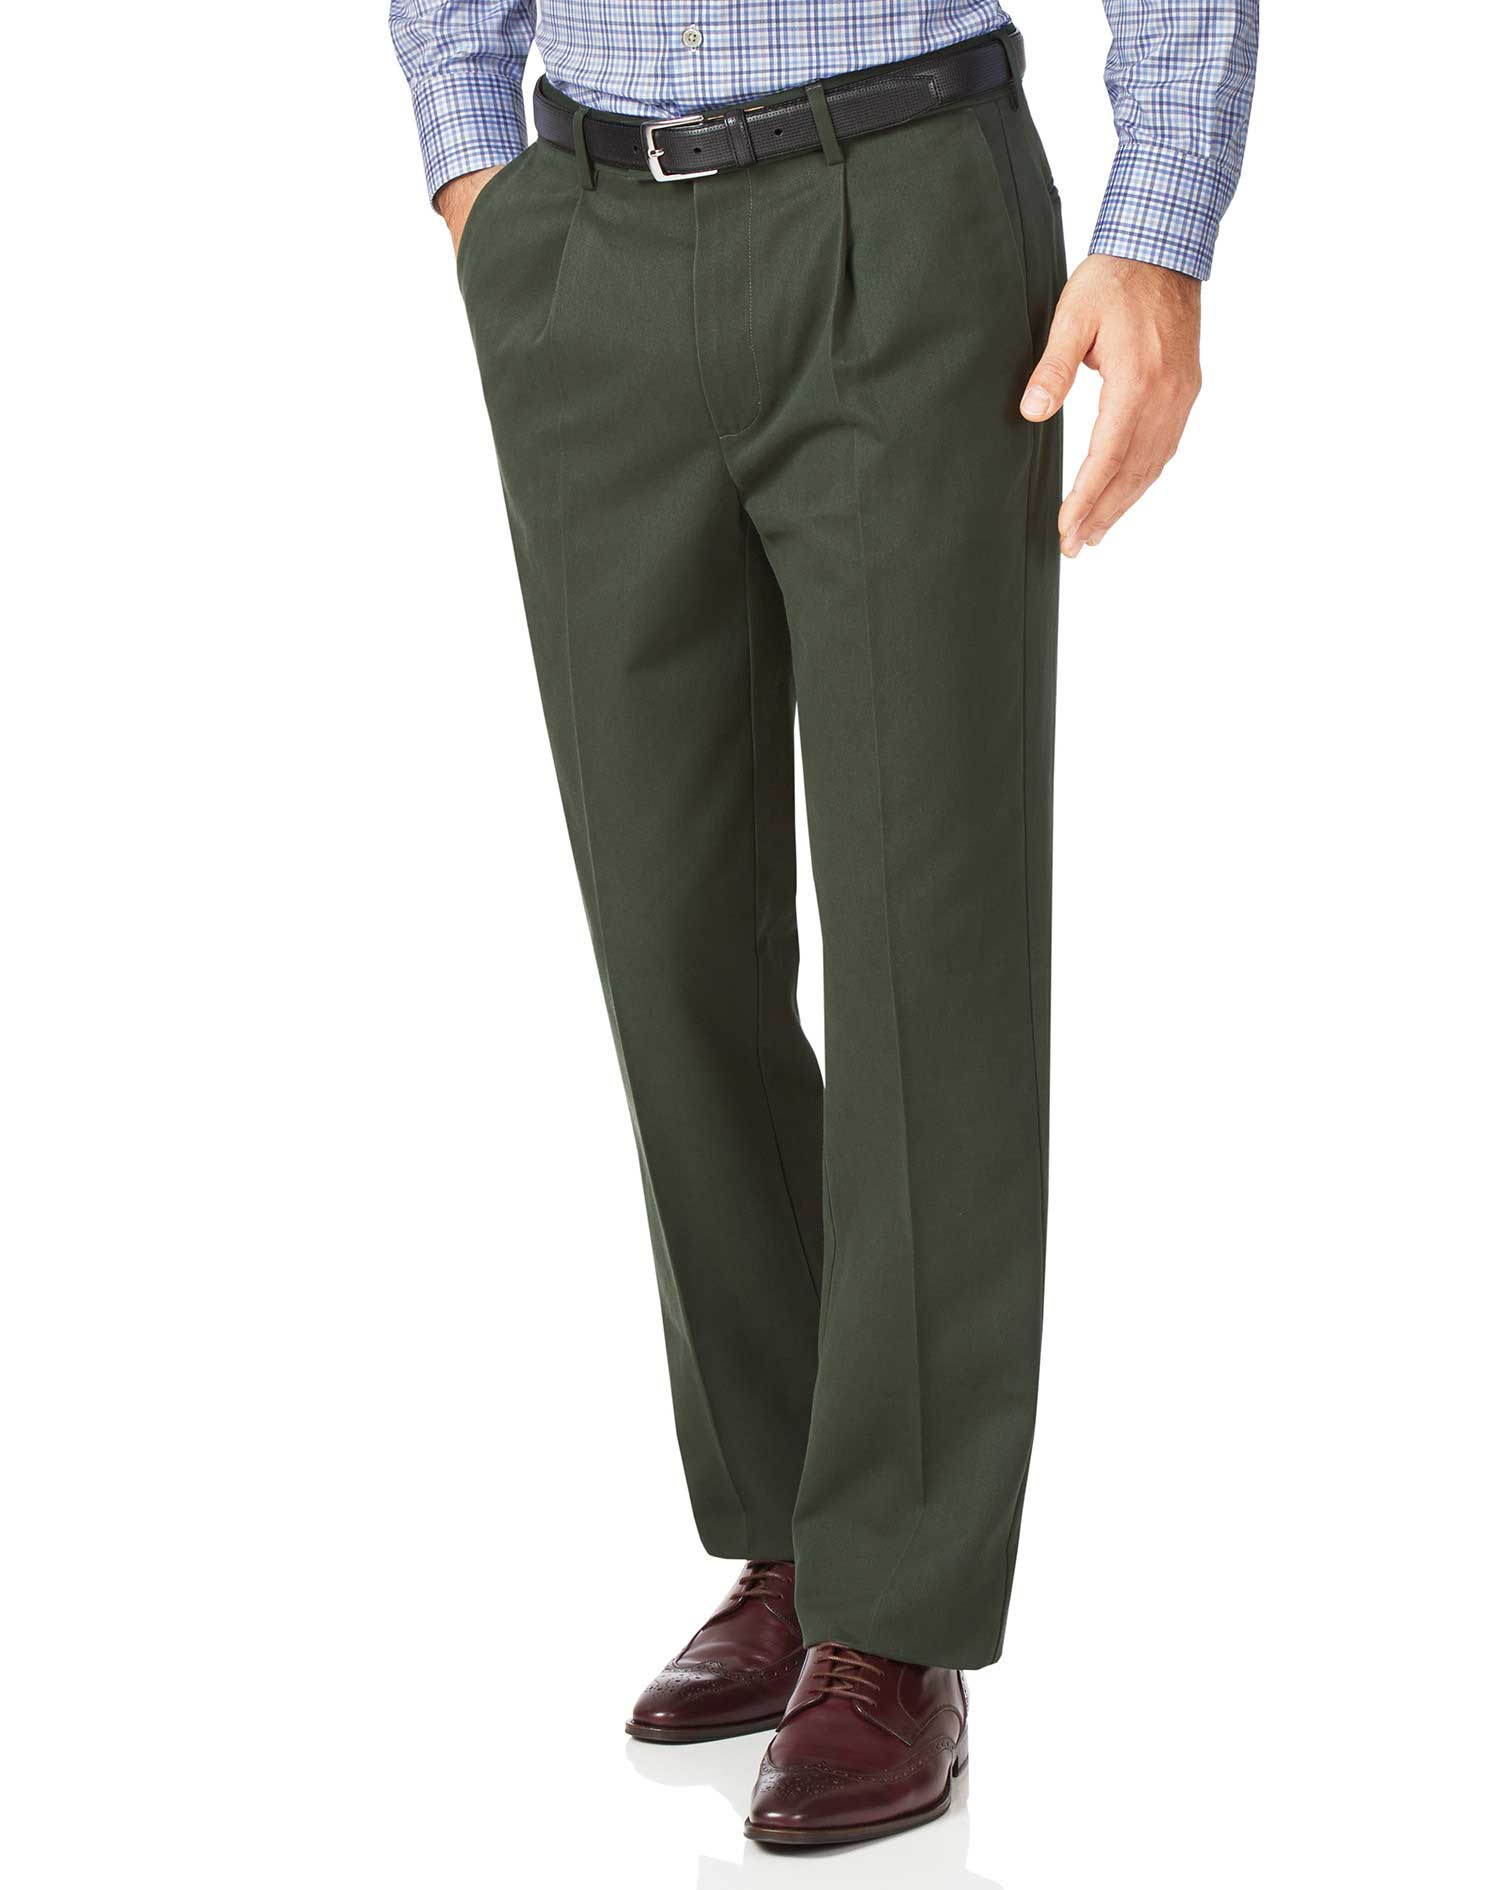 Dark Green Classic Fit Single Pleat Non-Iron Cotton Chino Trousers Size W32 L30 by Charles Tyrwhitt